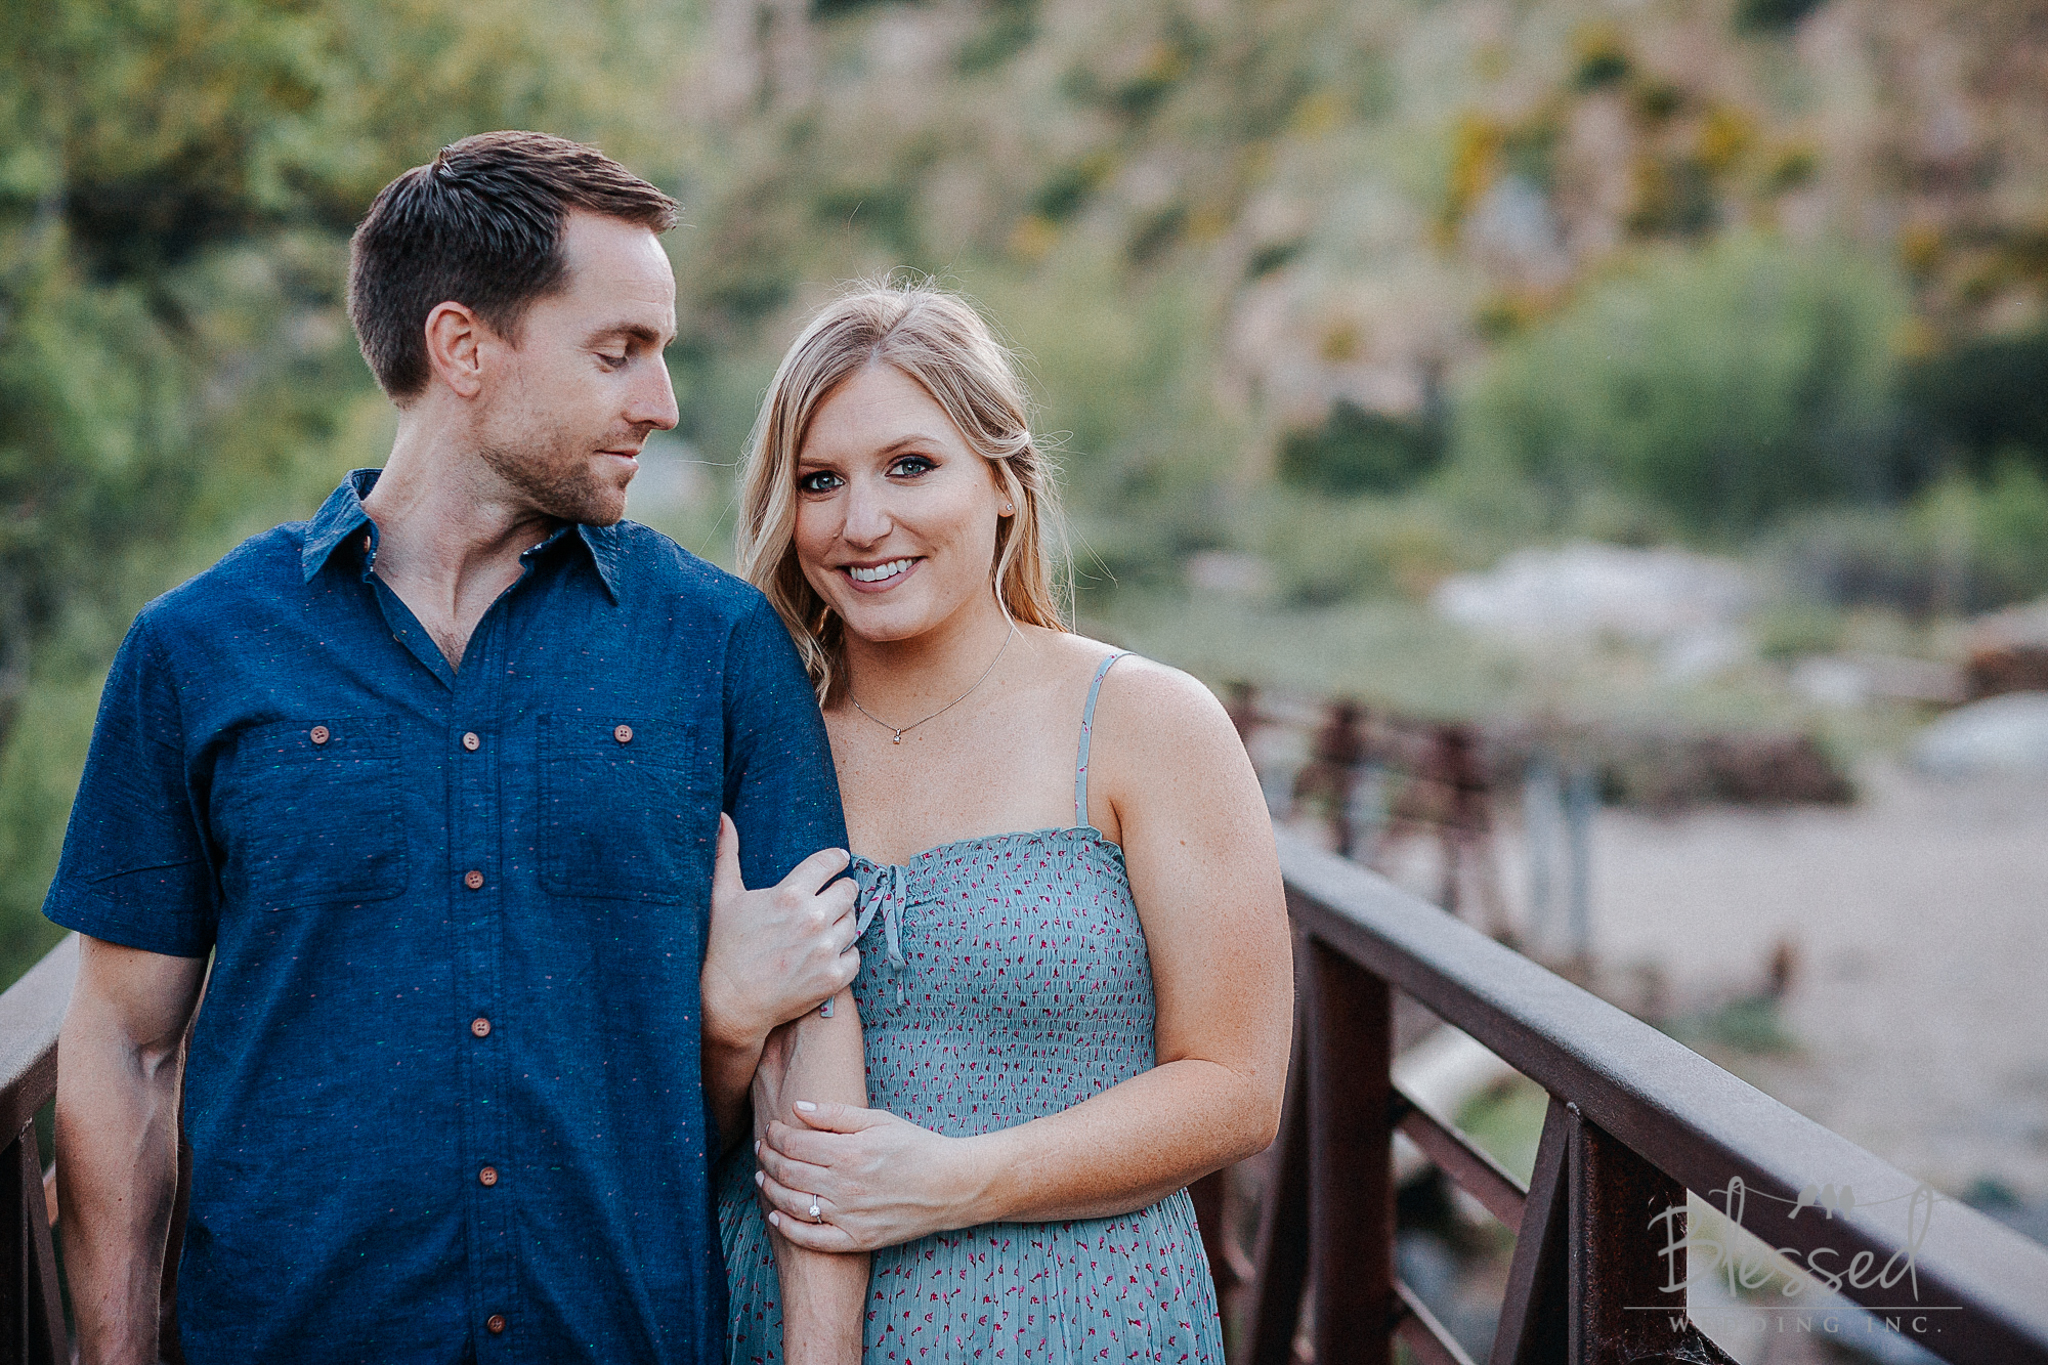 San Diego Engagement Session by San Diego Wedding Photographers Blessed Wedding-45.jpg